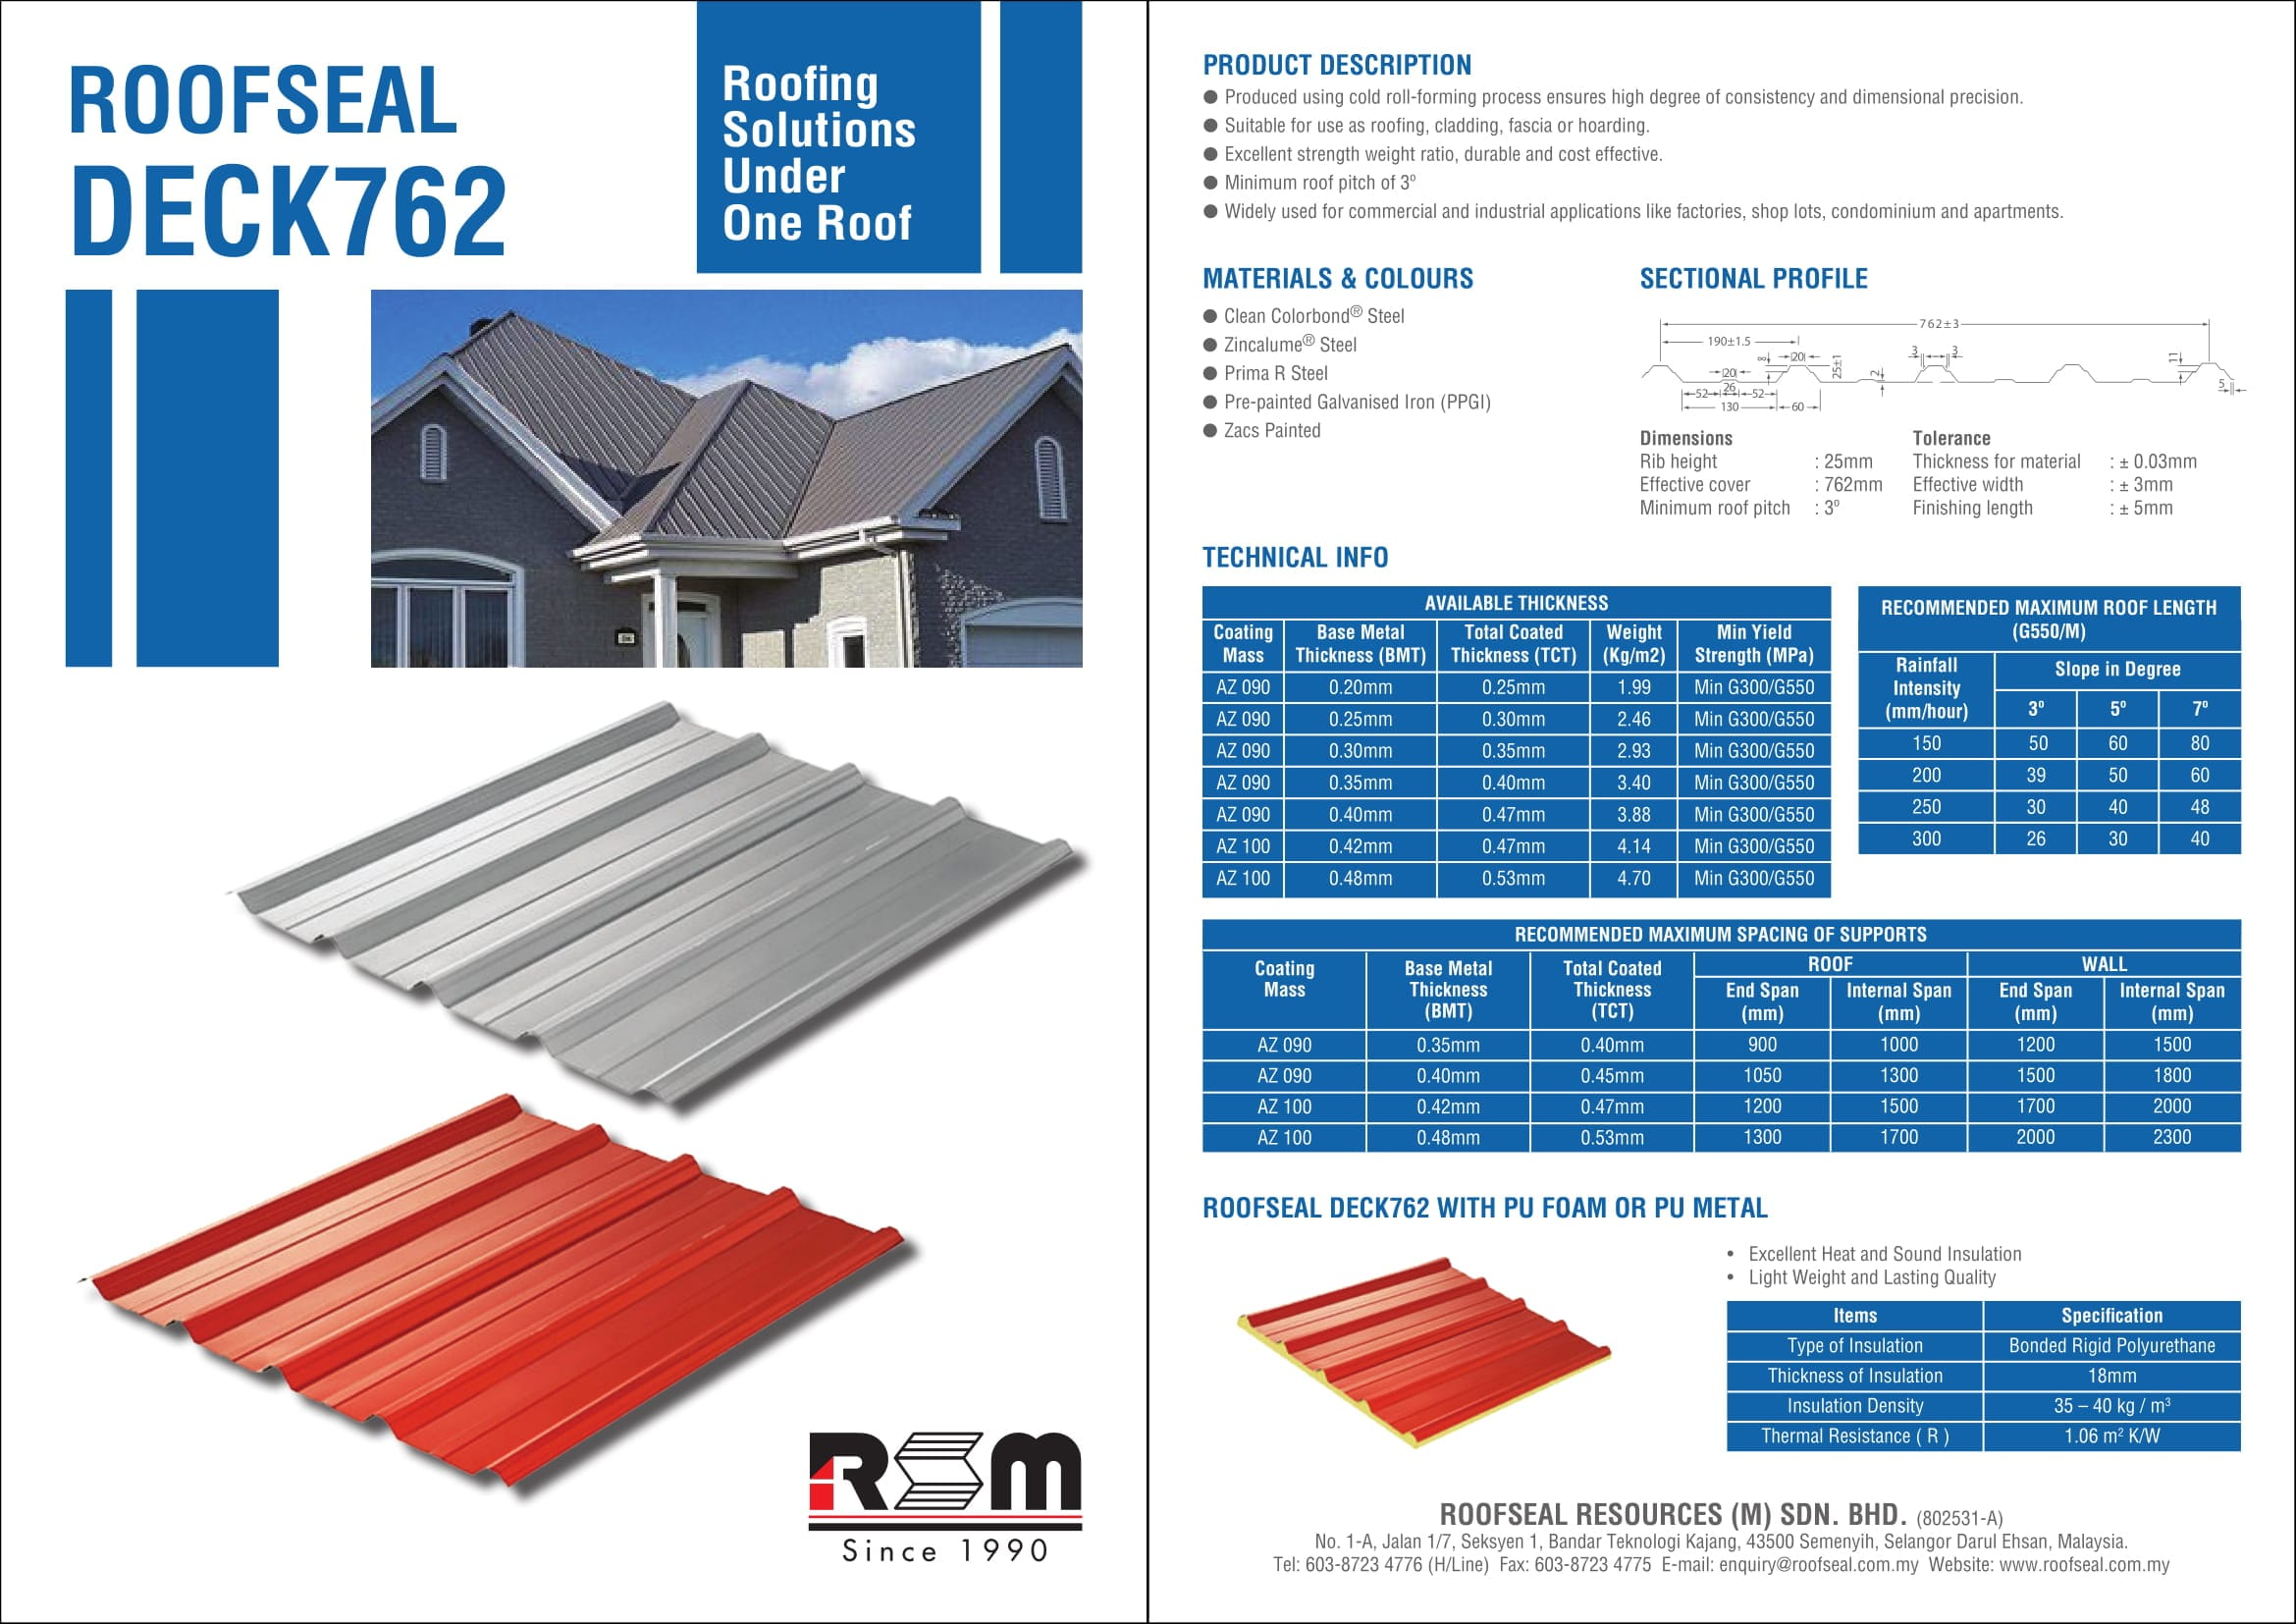 Roofseal Deck762 Metal Roof   Builtory Product